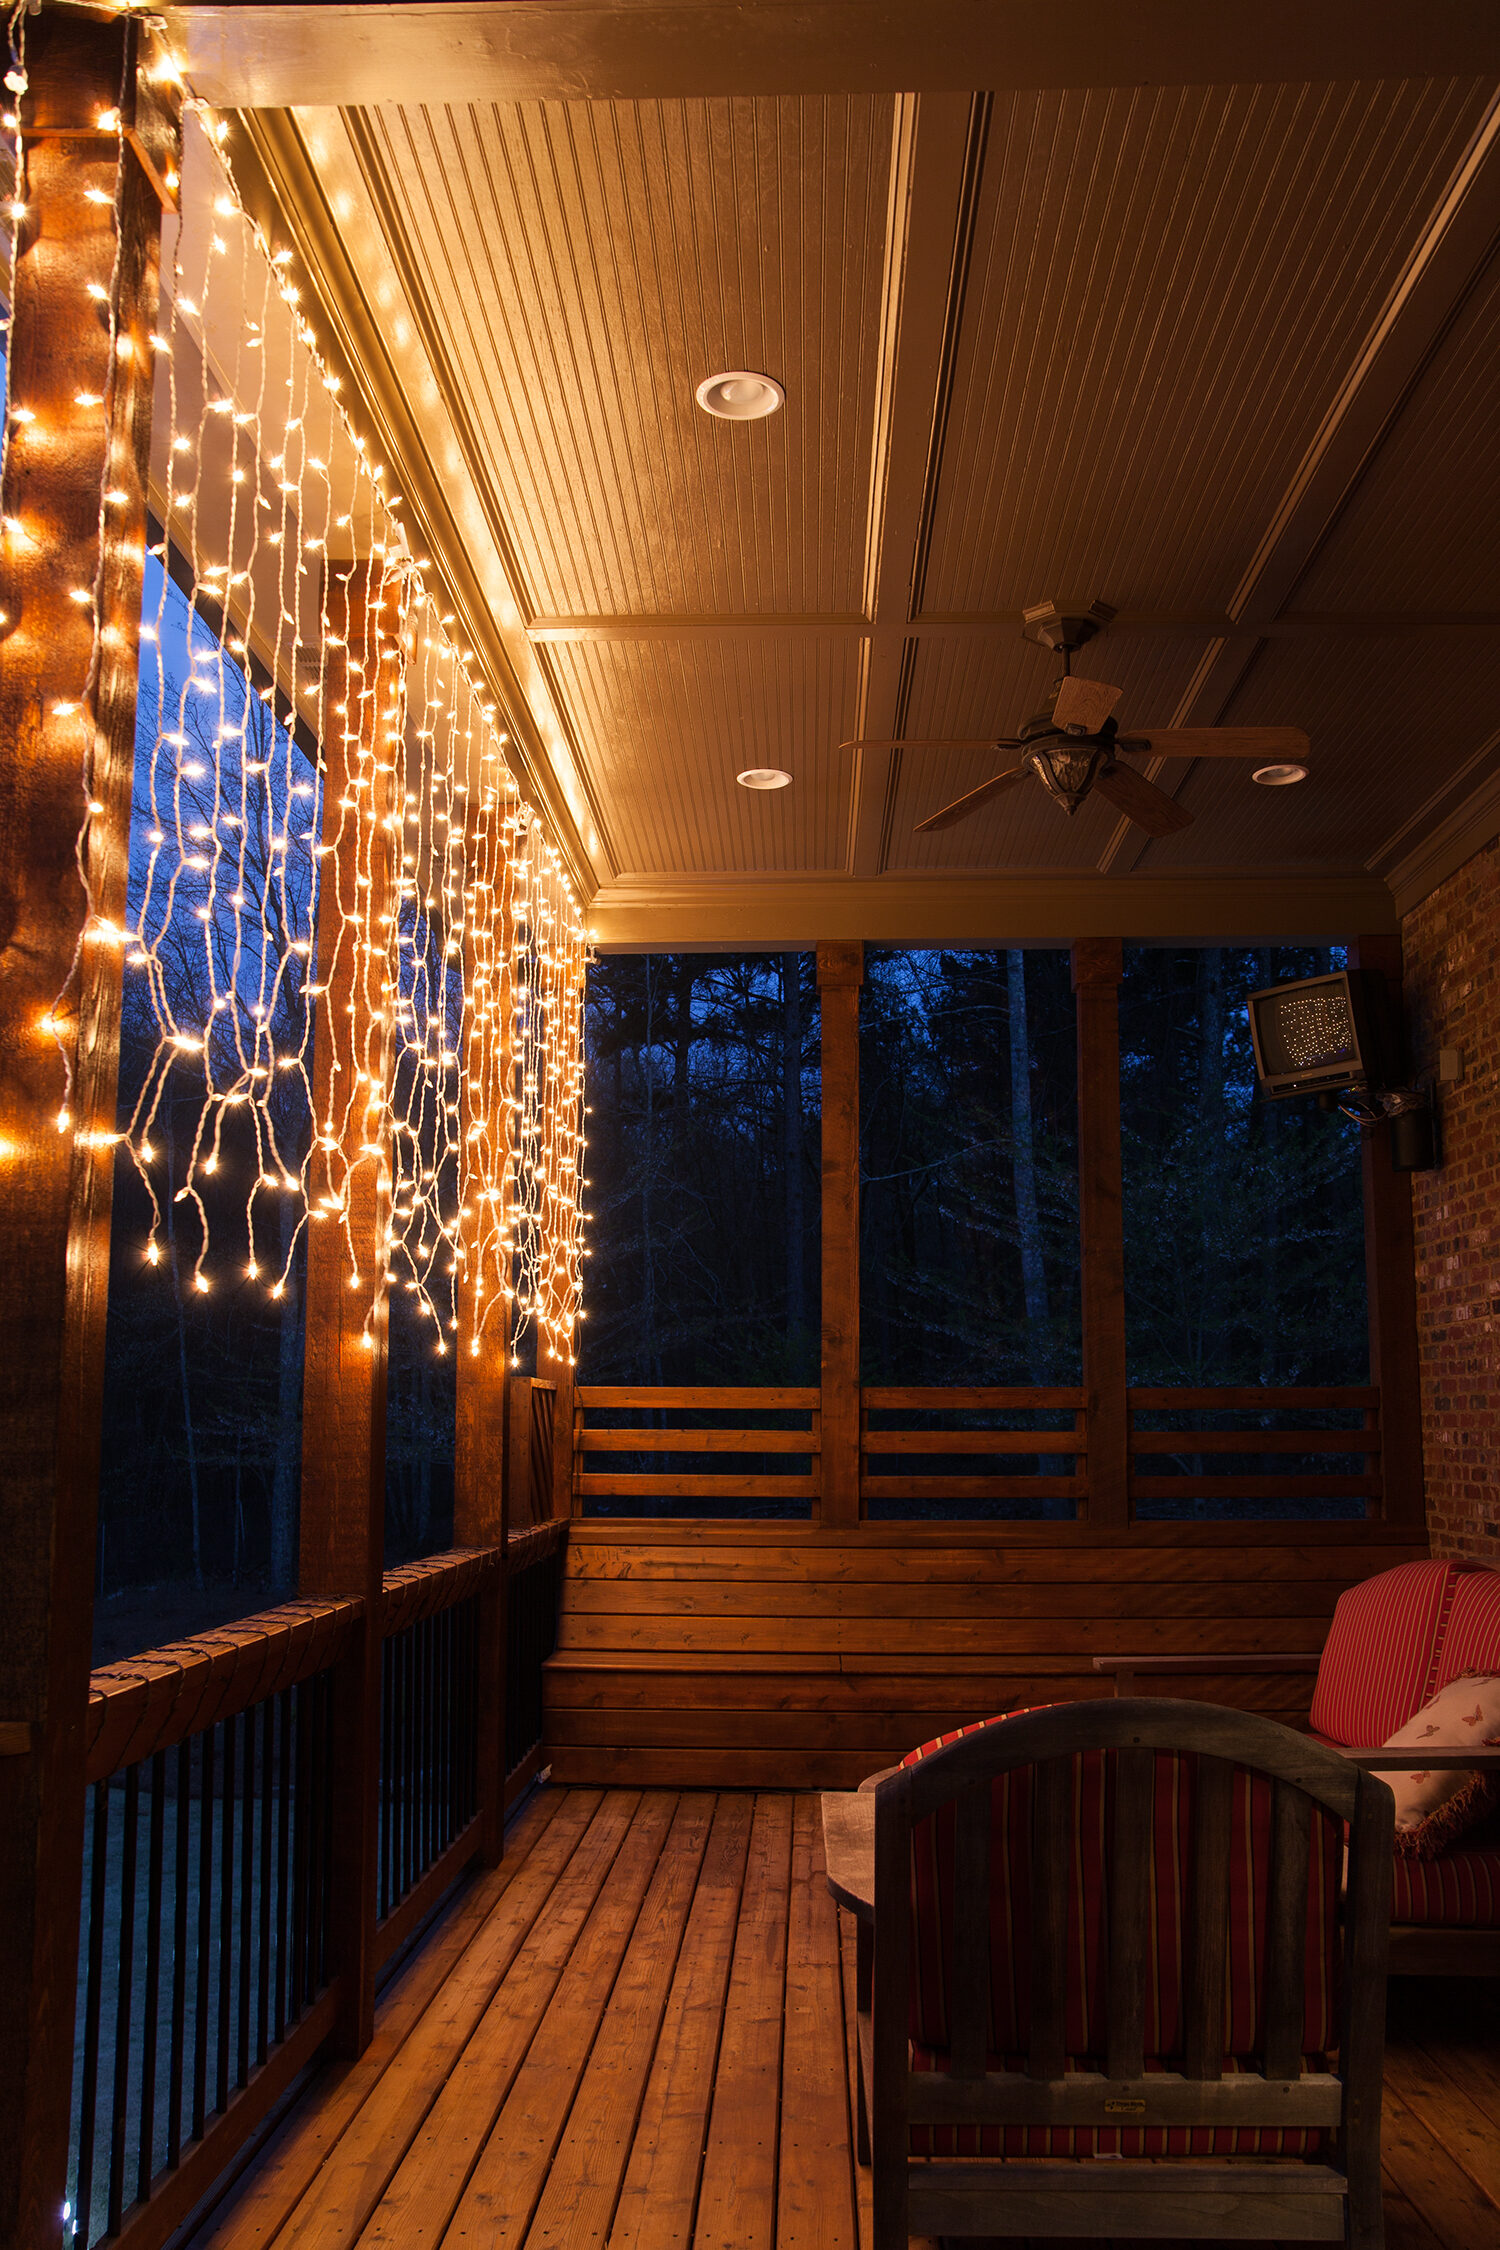 Genius deck lighting ideas Create a glowing conversation area with curtain lights! & Deck Lighting Ideas with Brilliant Results! - Yard Envy